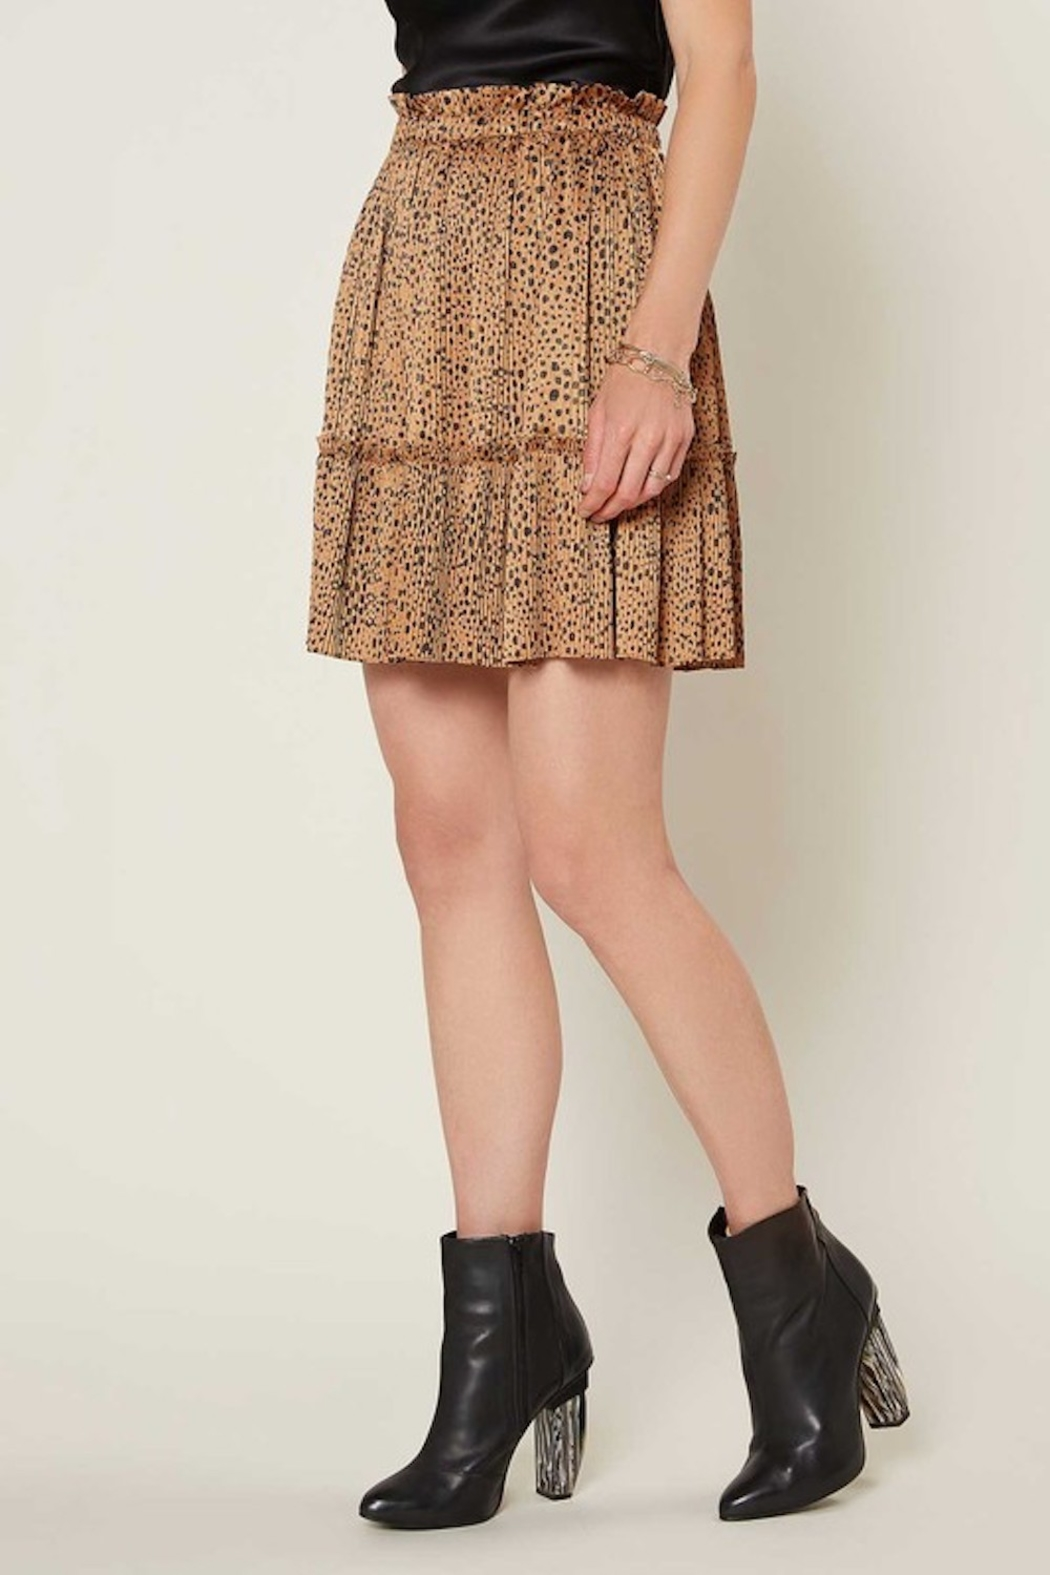 Current Air  Leopard Pleated Mini Skirt - Front Full Image